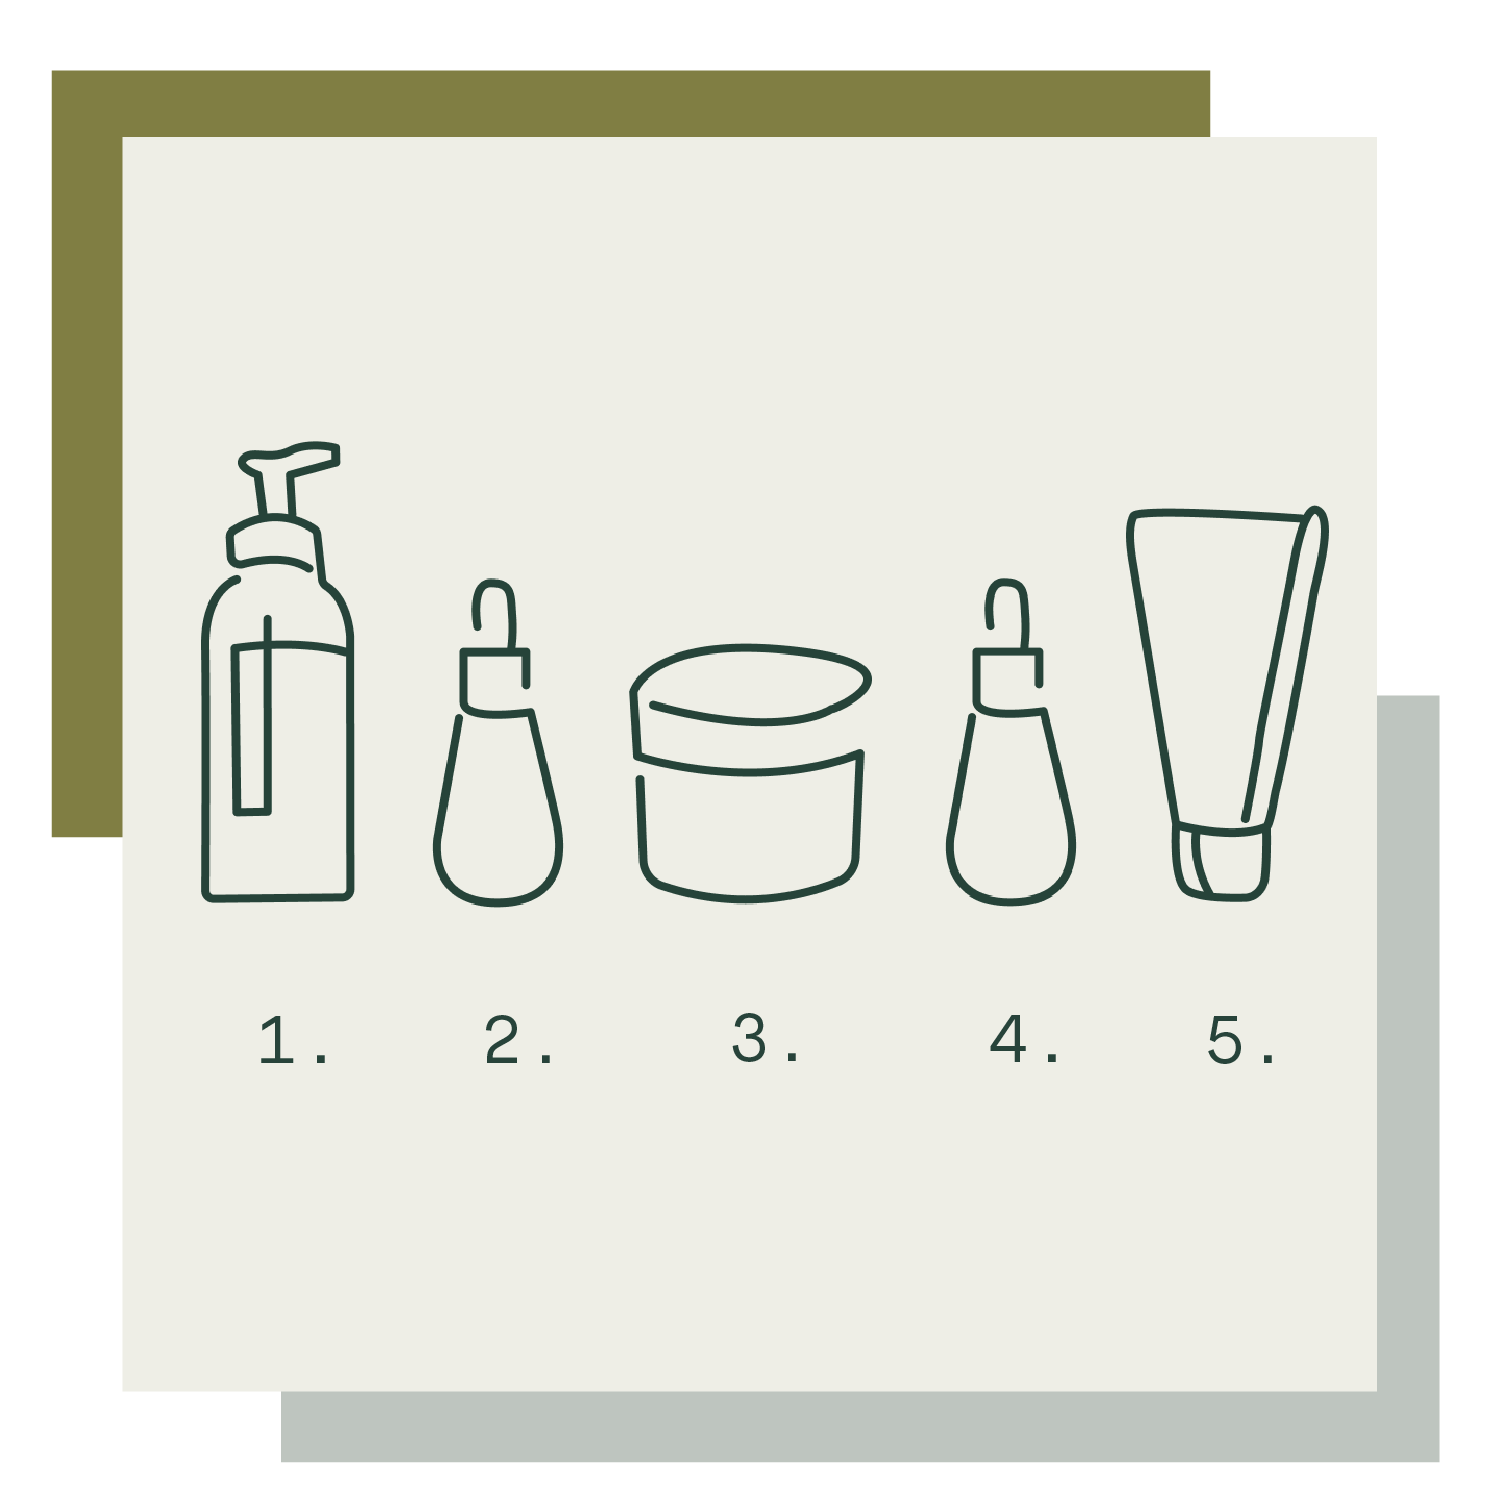 This is the correct order to apply your skincare products